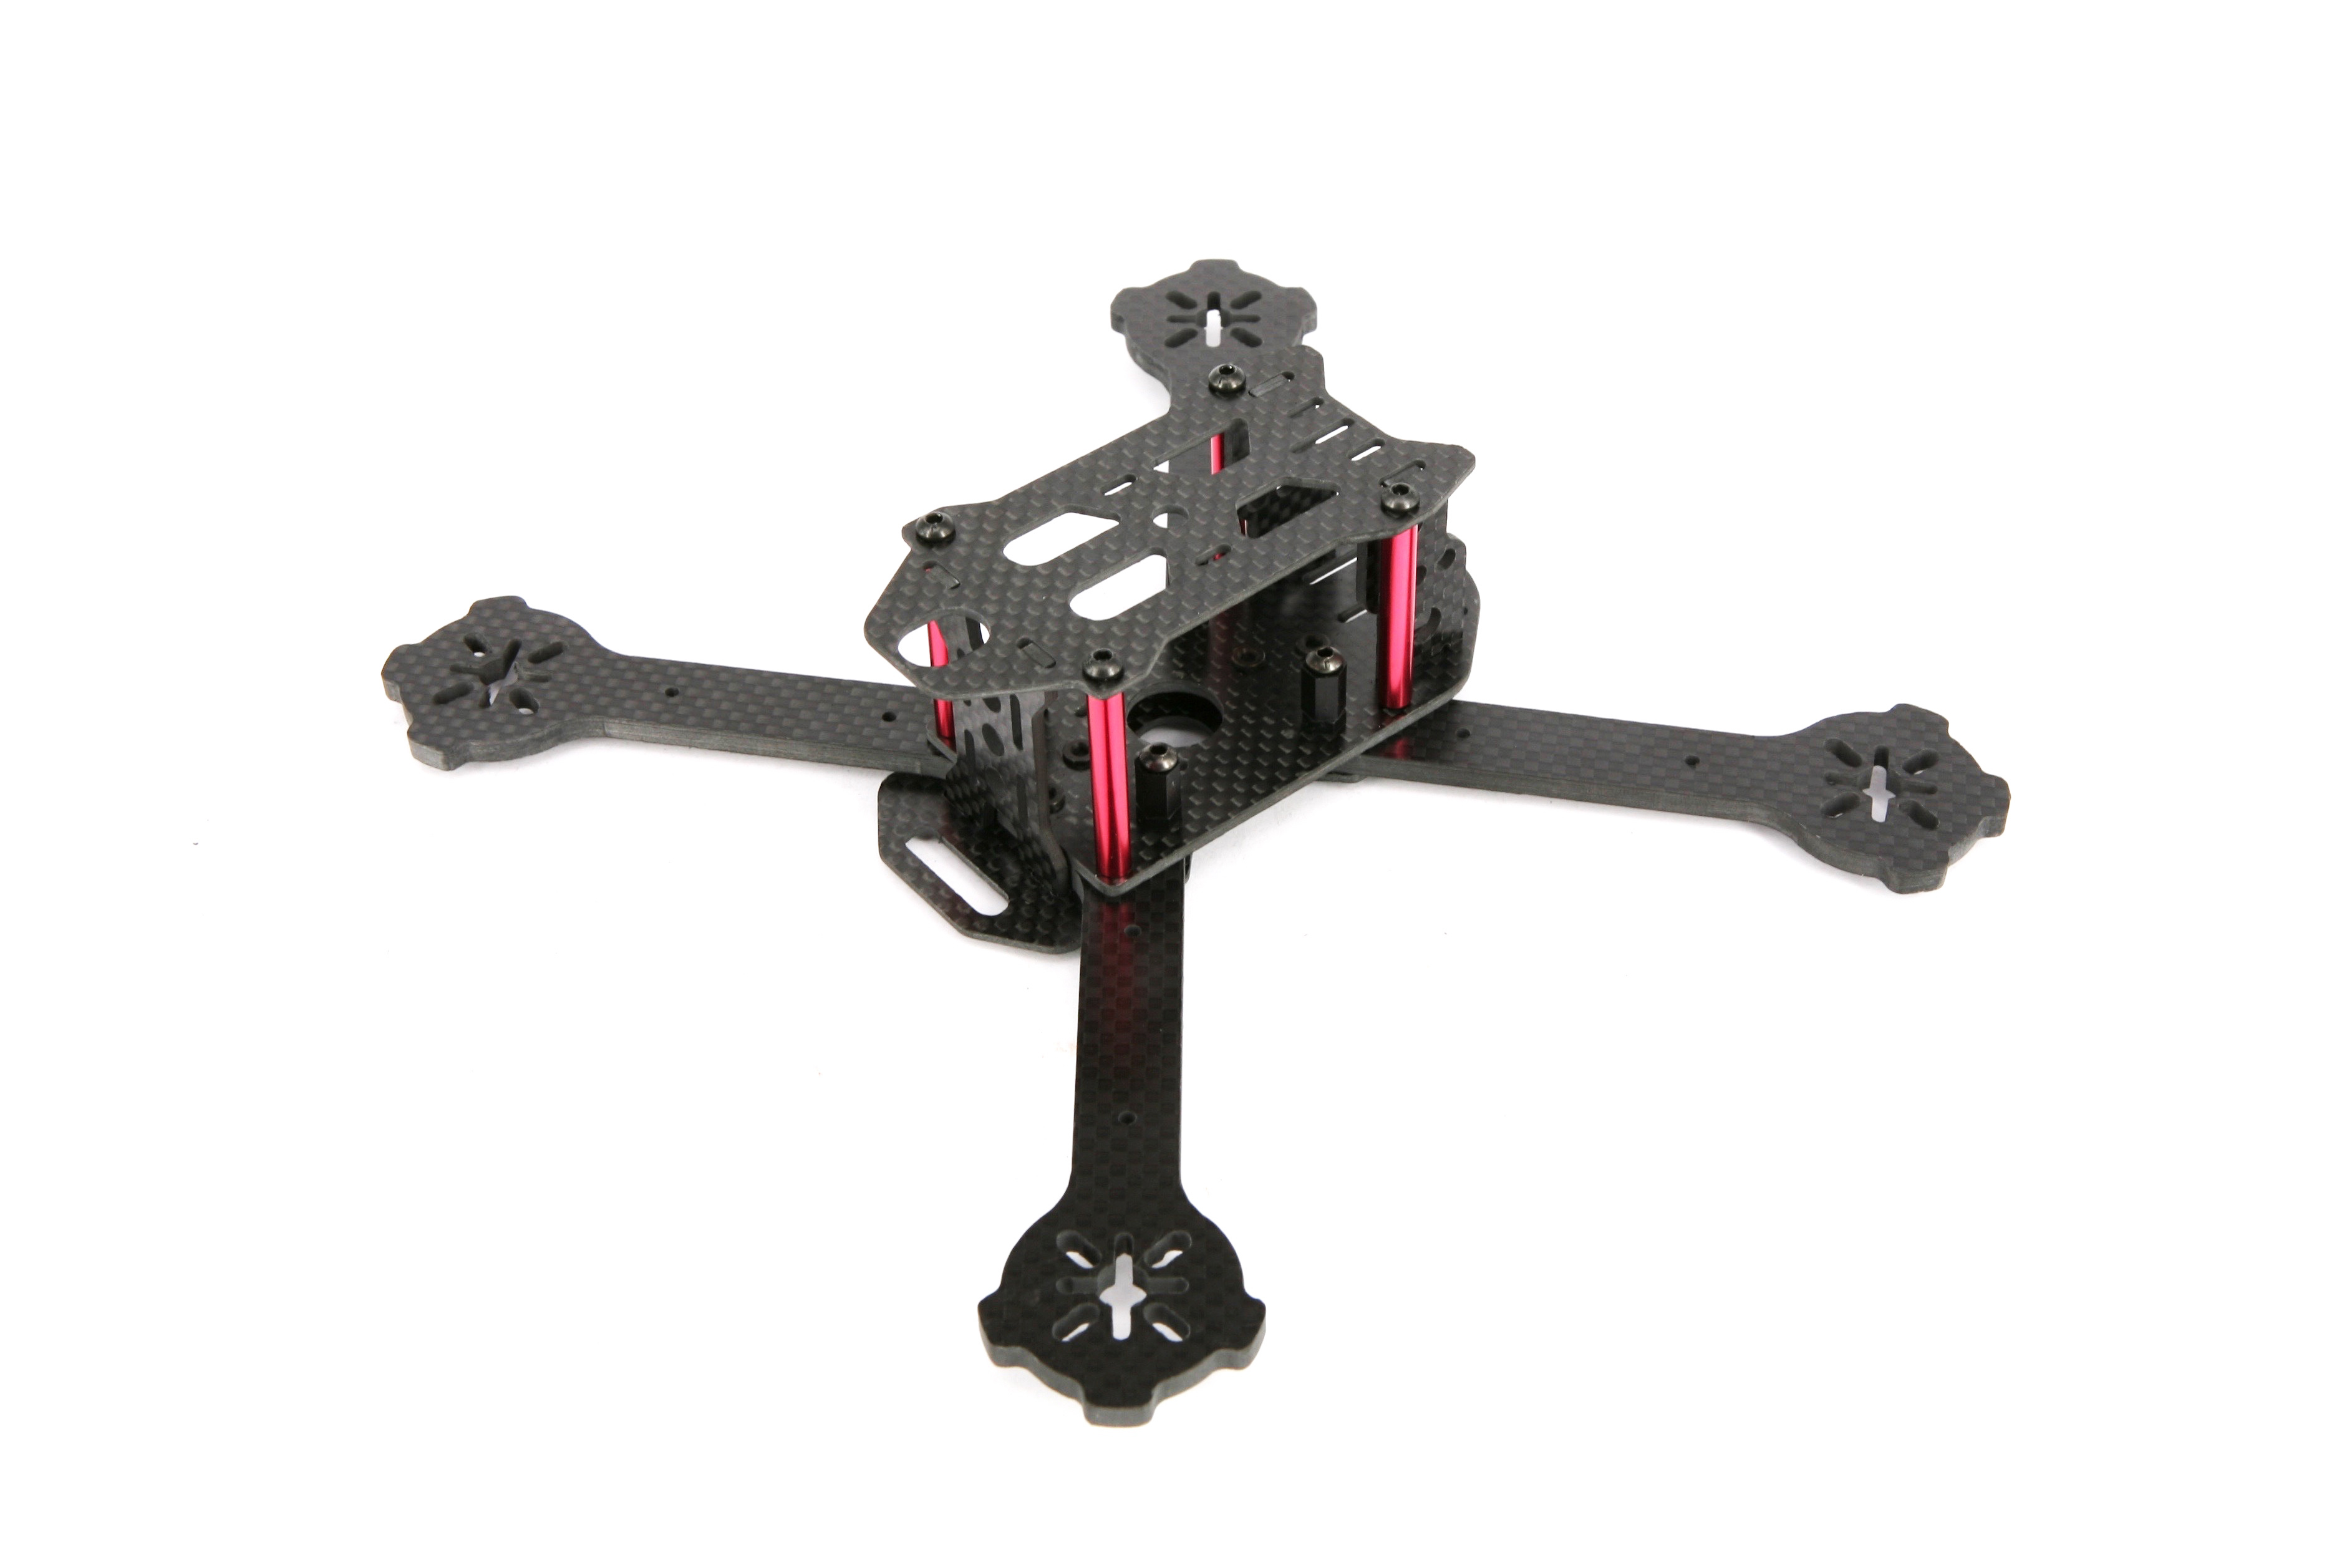 Kylin 210-01 Carbonfiber FPV Kit